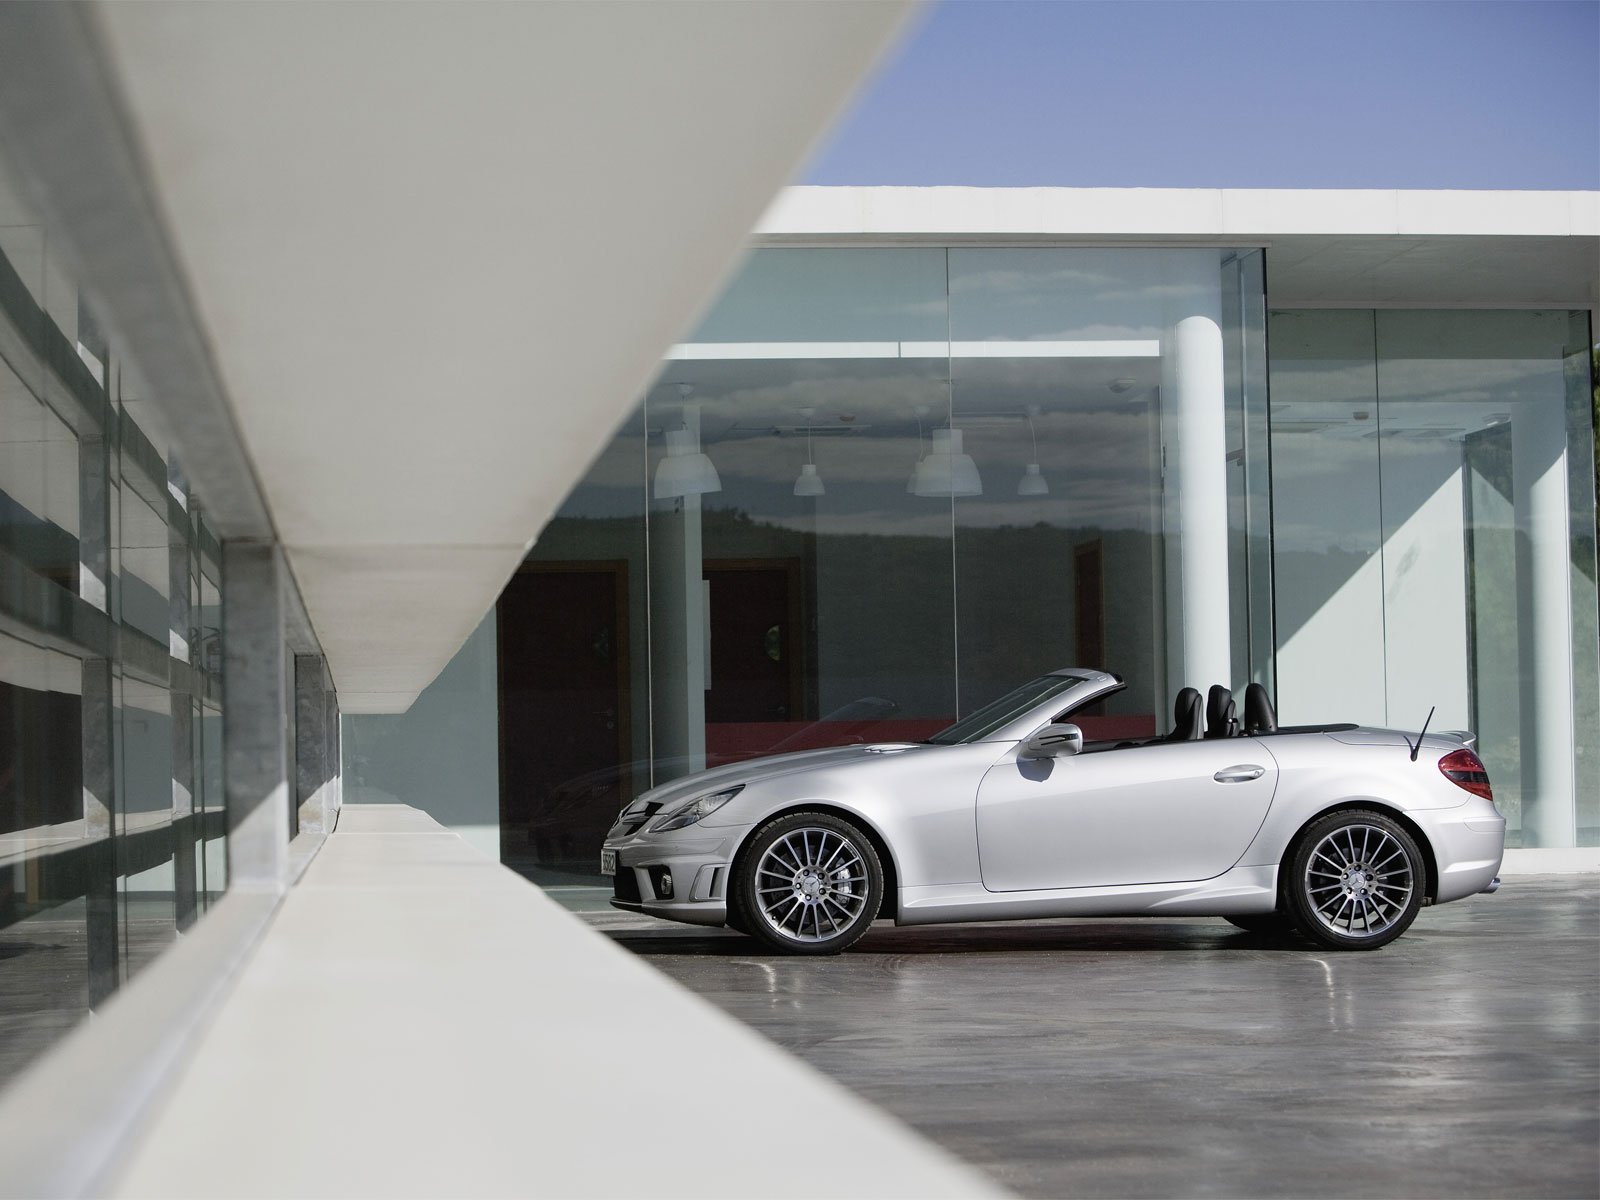 Mercedes-Benz SLK 55 AMG photo 12